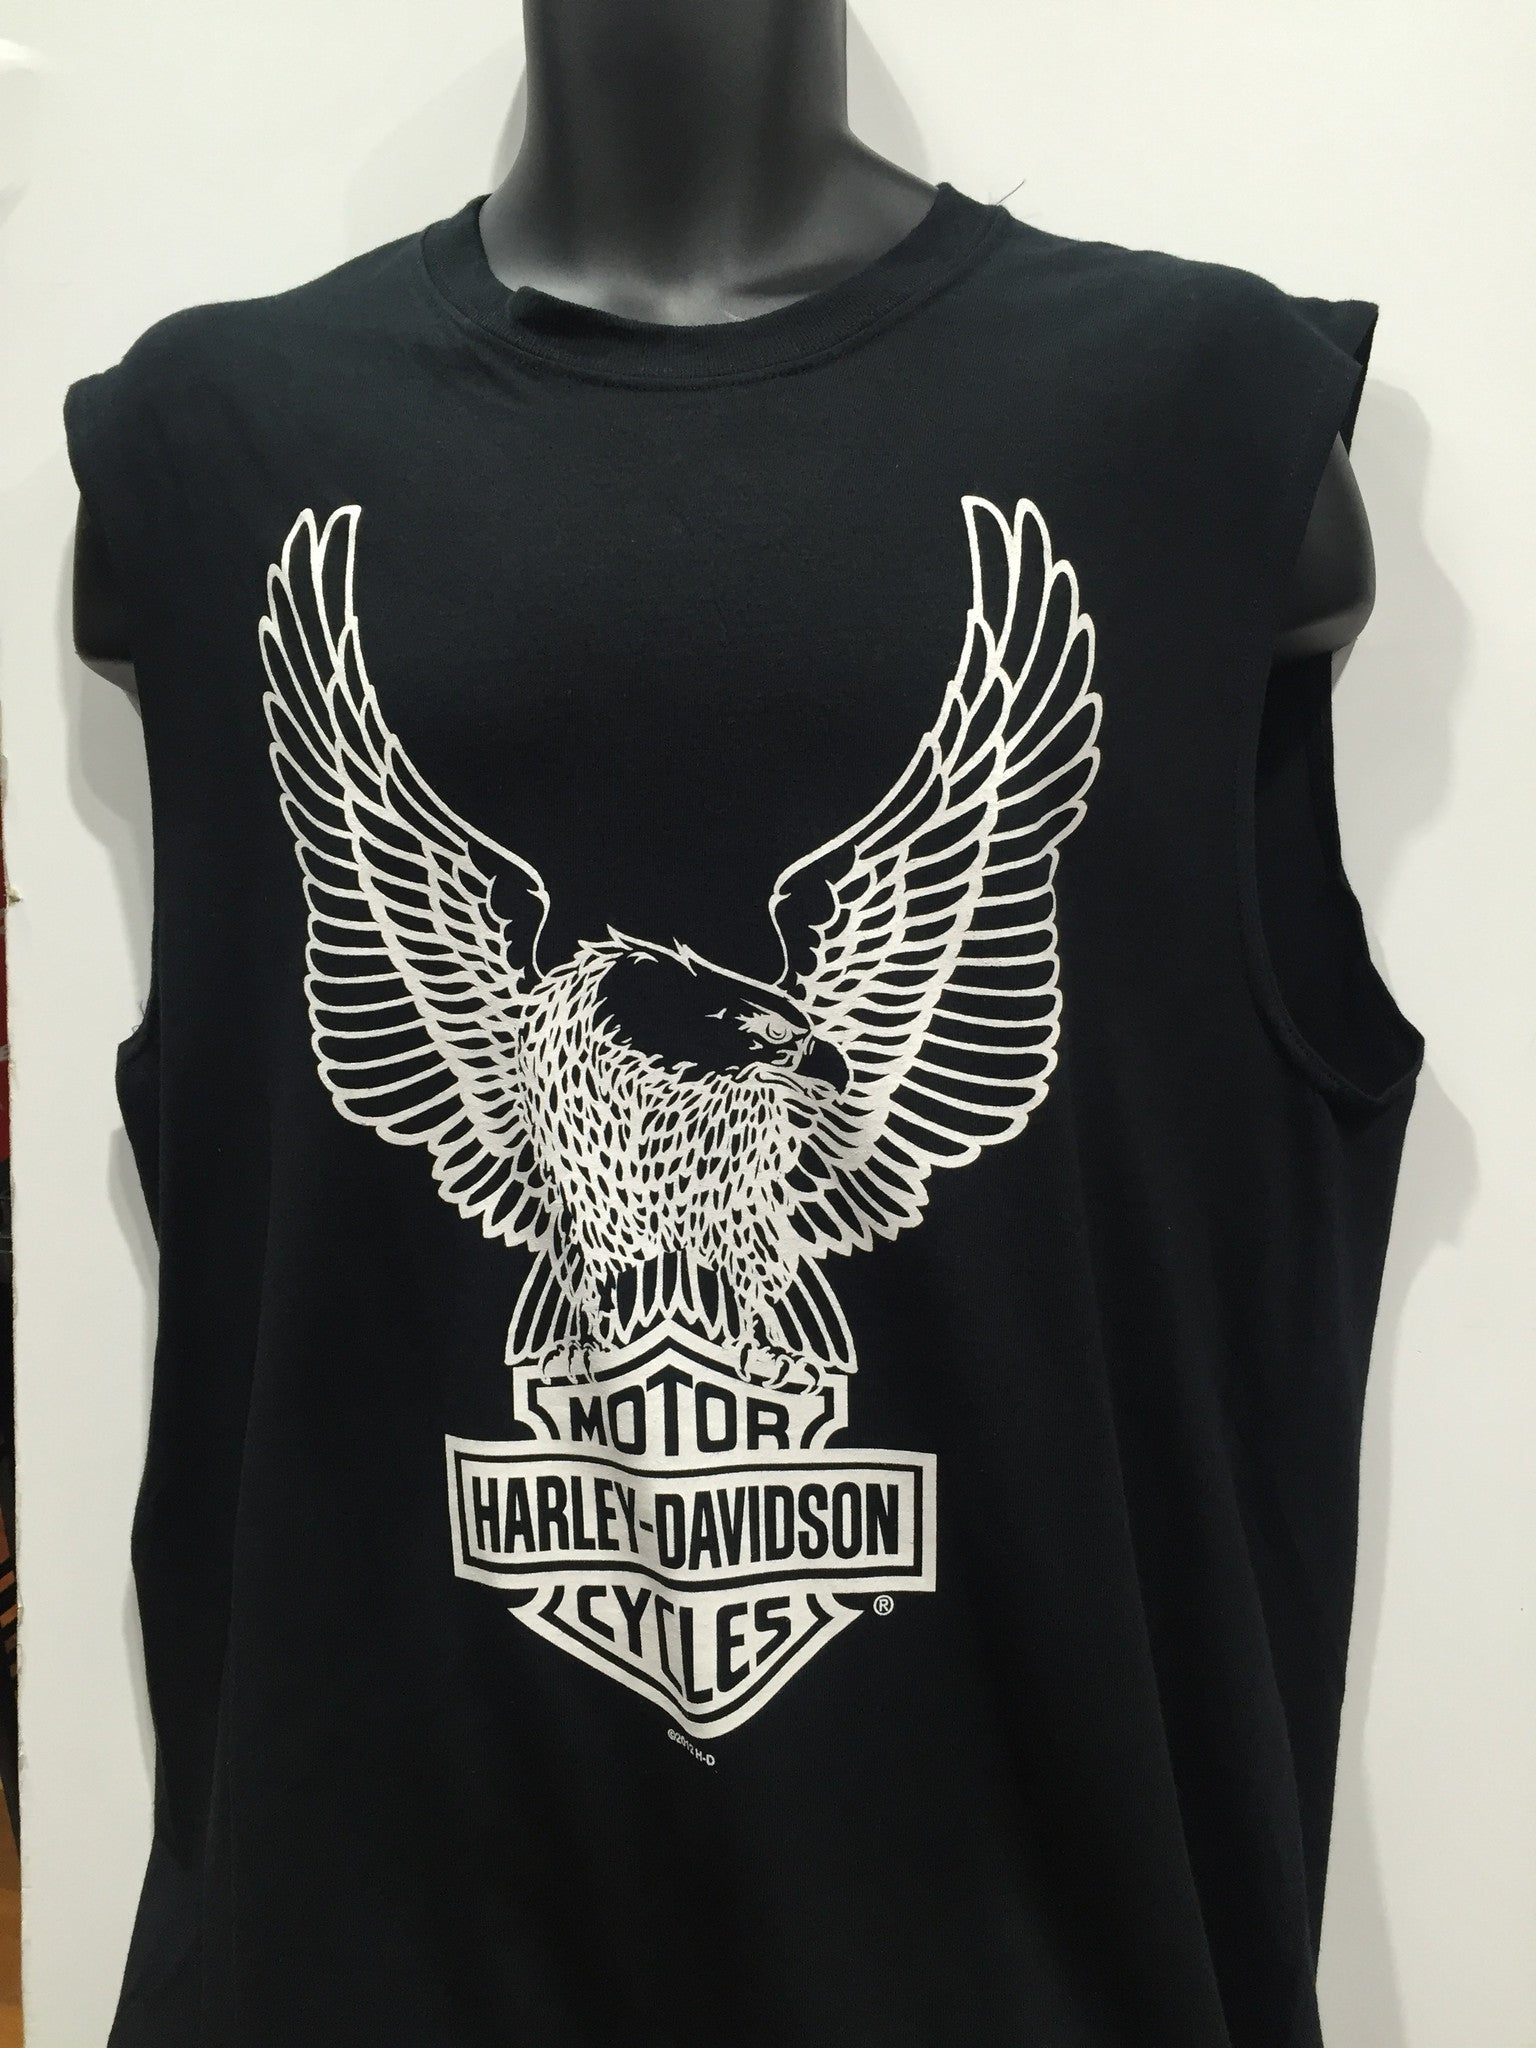 904fbb996 Harley Davidson Motorcycles Eagles Bar and Shield Muscle Tee Black. Men's  Sizing Small-2XLarge